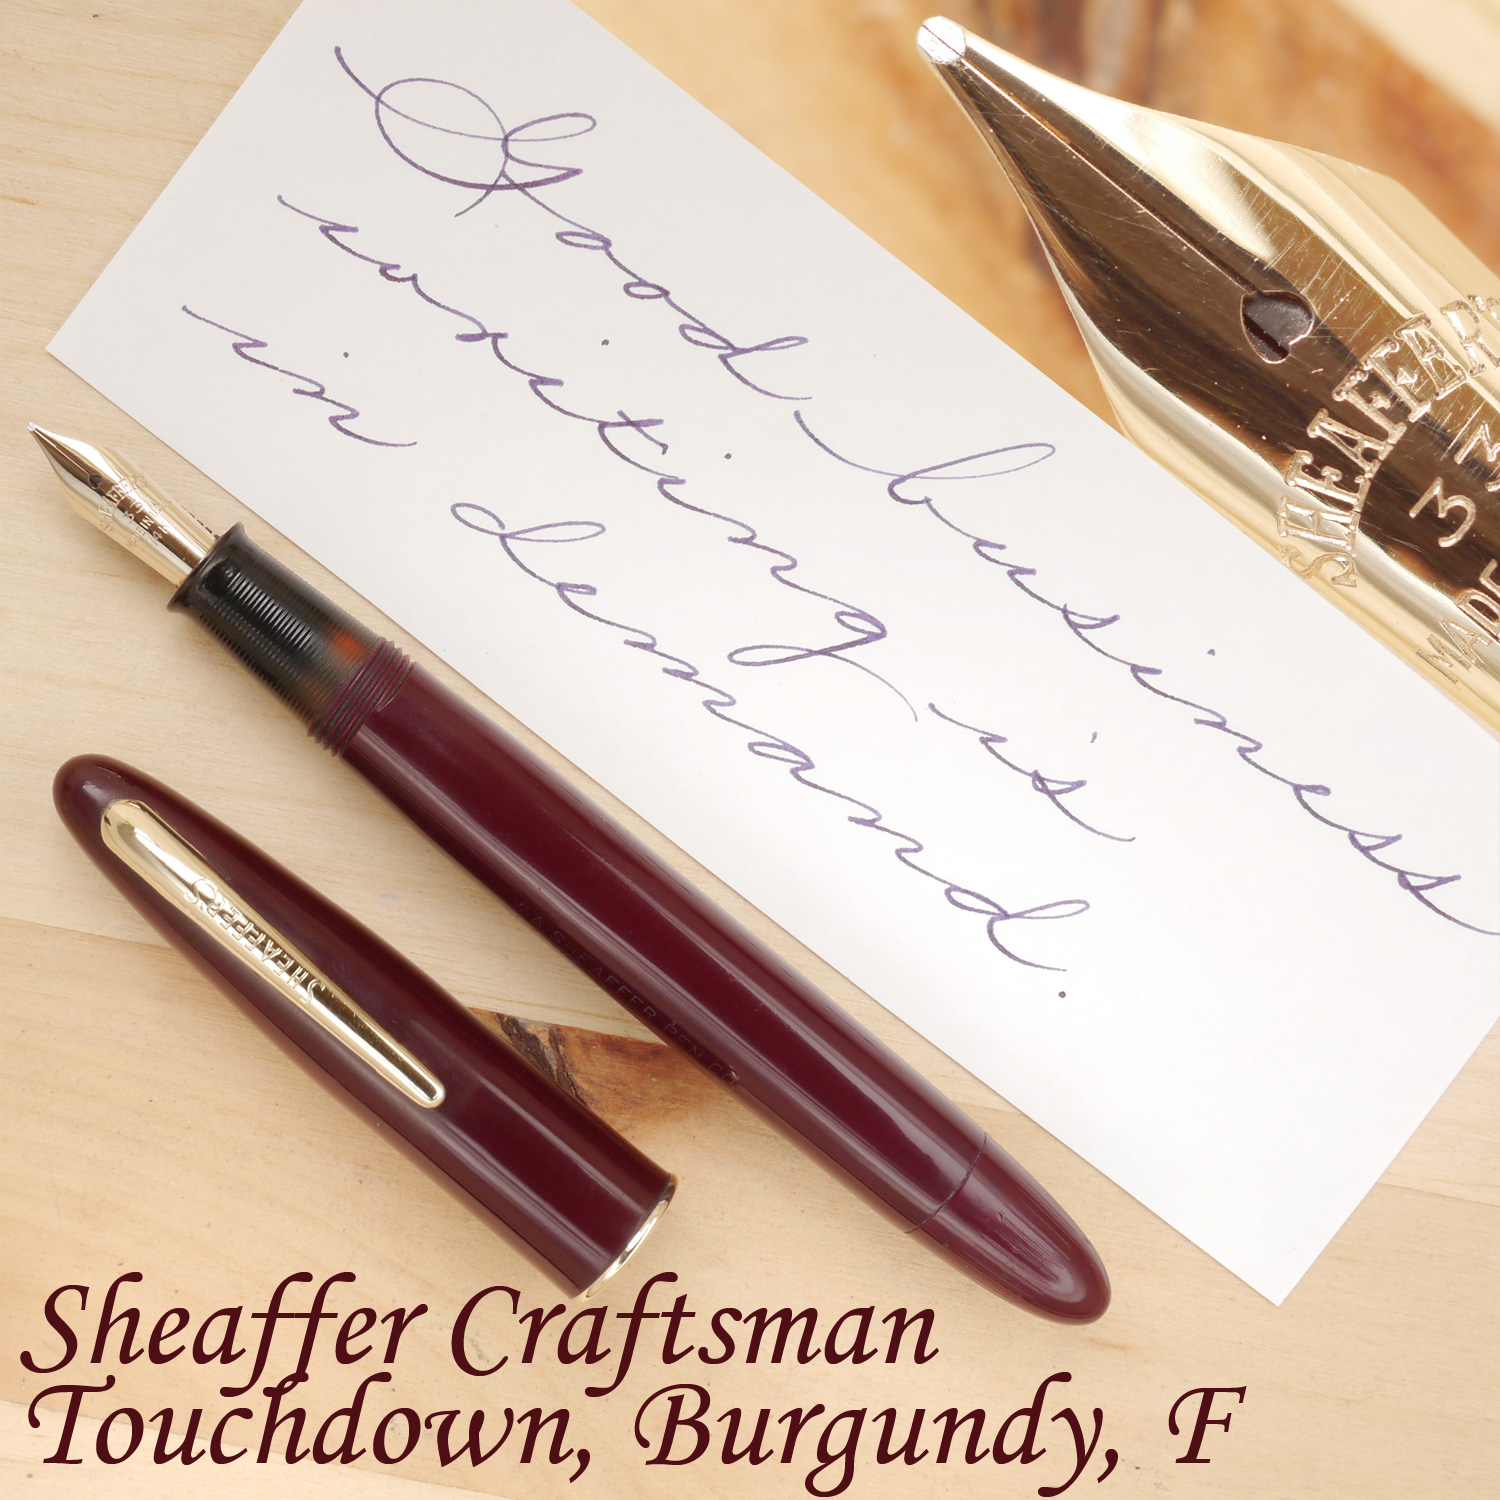 Sheaffer Craftsman Touchdown, Burgundy, F, uncapped.